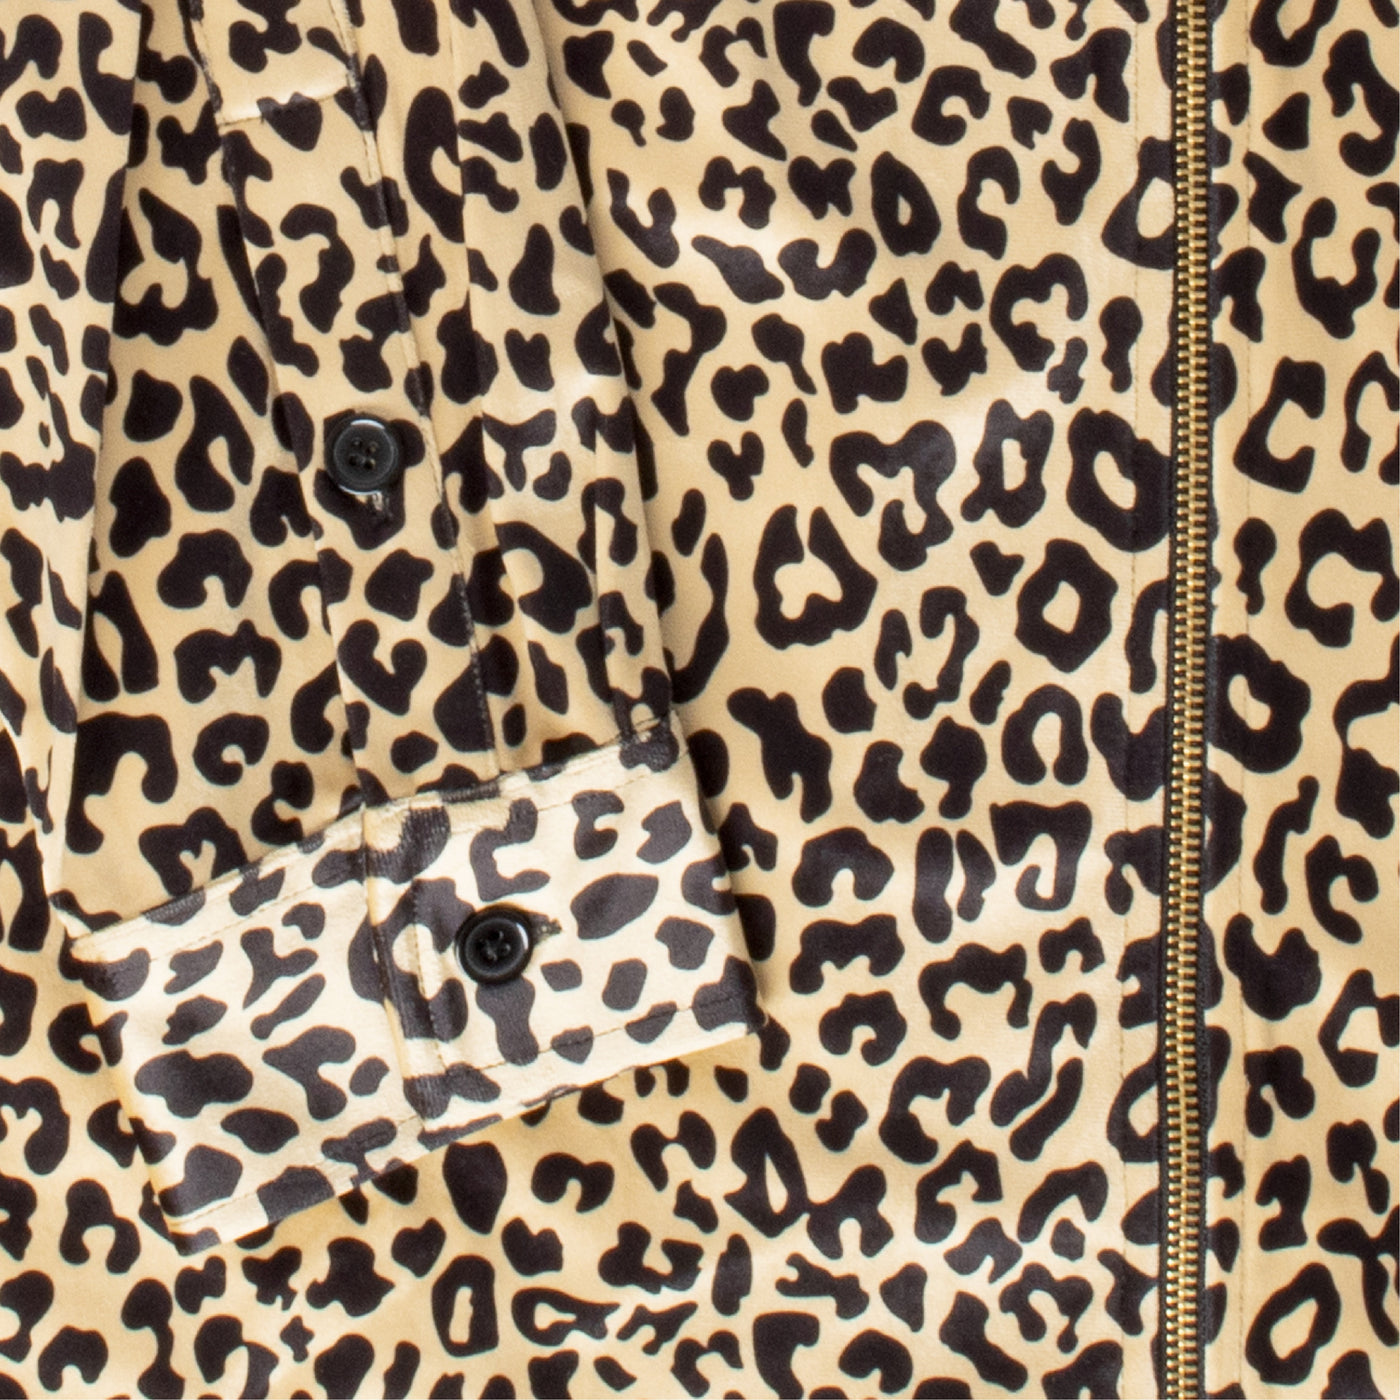 Load image into Gallery viewer, NOON GOONS LEOPARD-PRINT SHIRT NEUTRAL